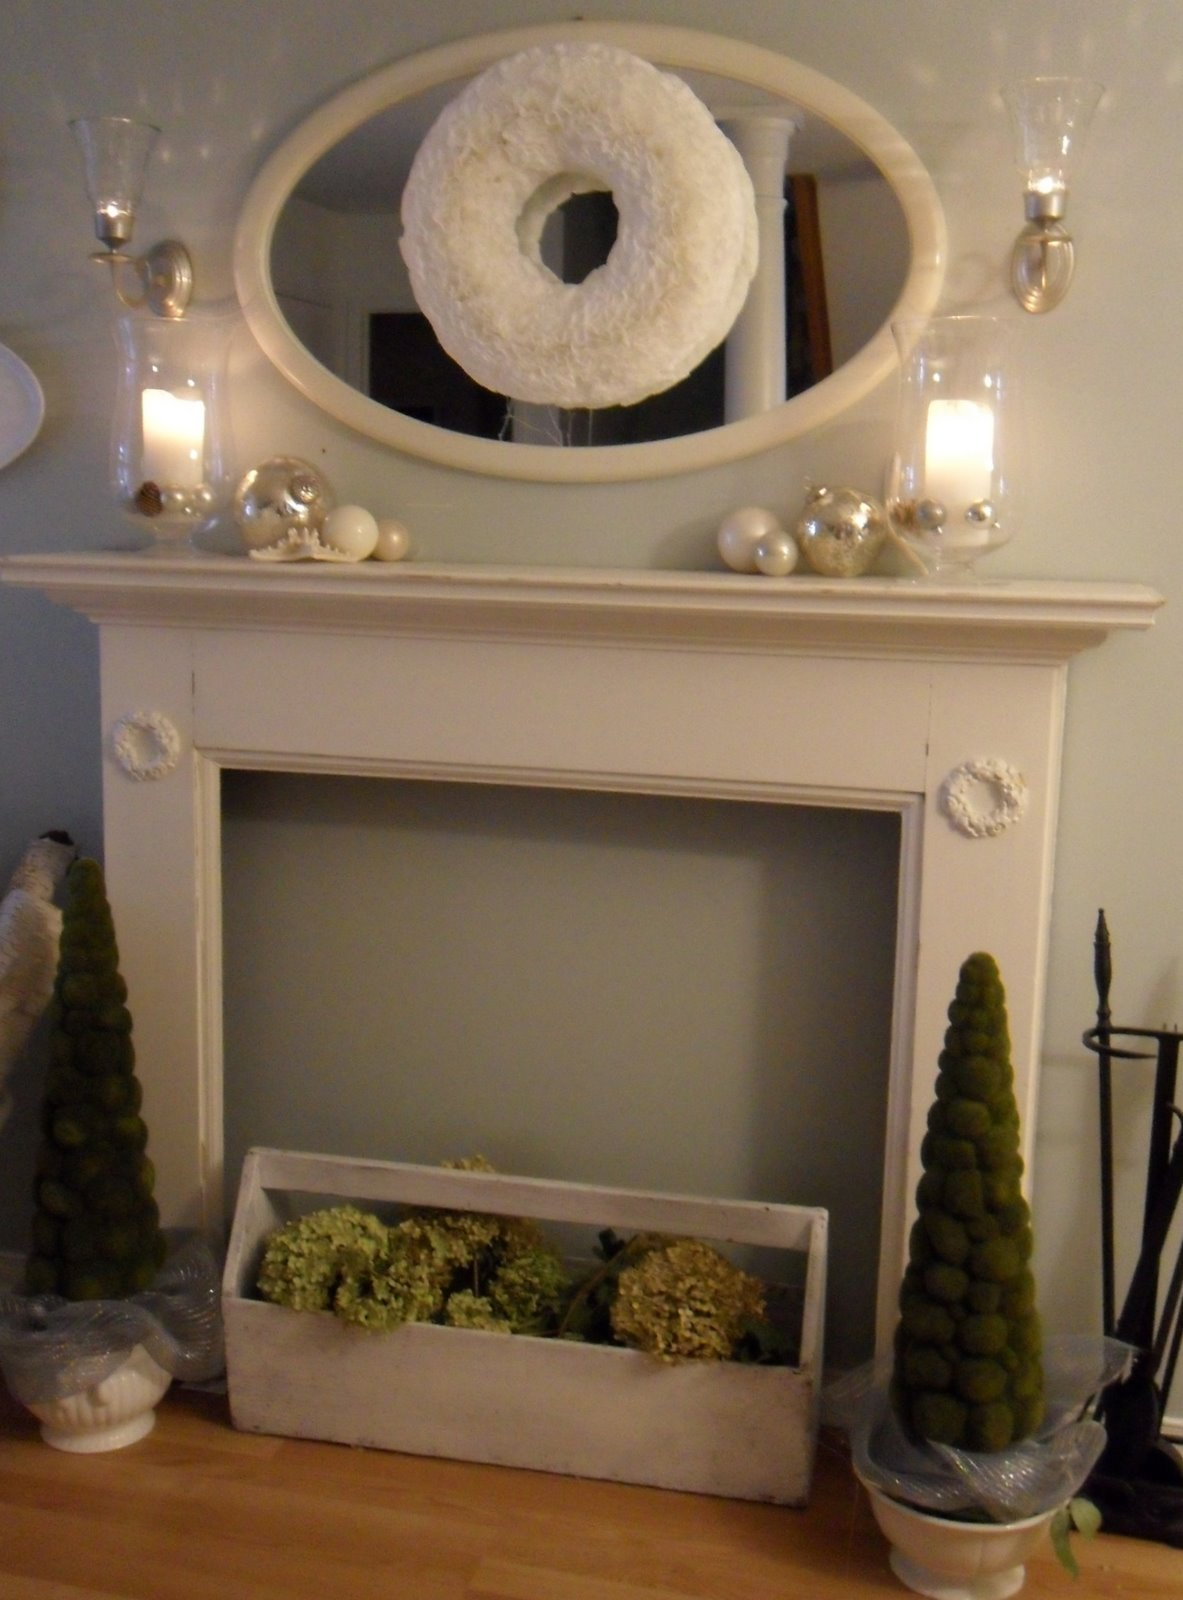 Restoration House Christmas Coffee filter Wreath